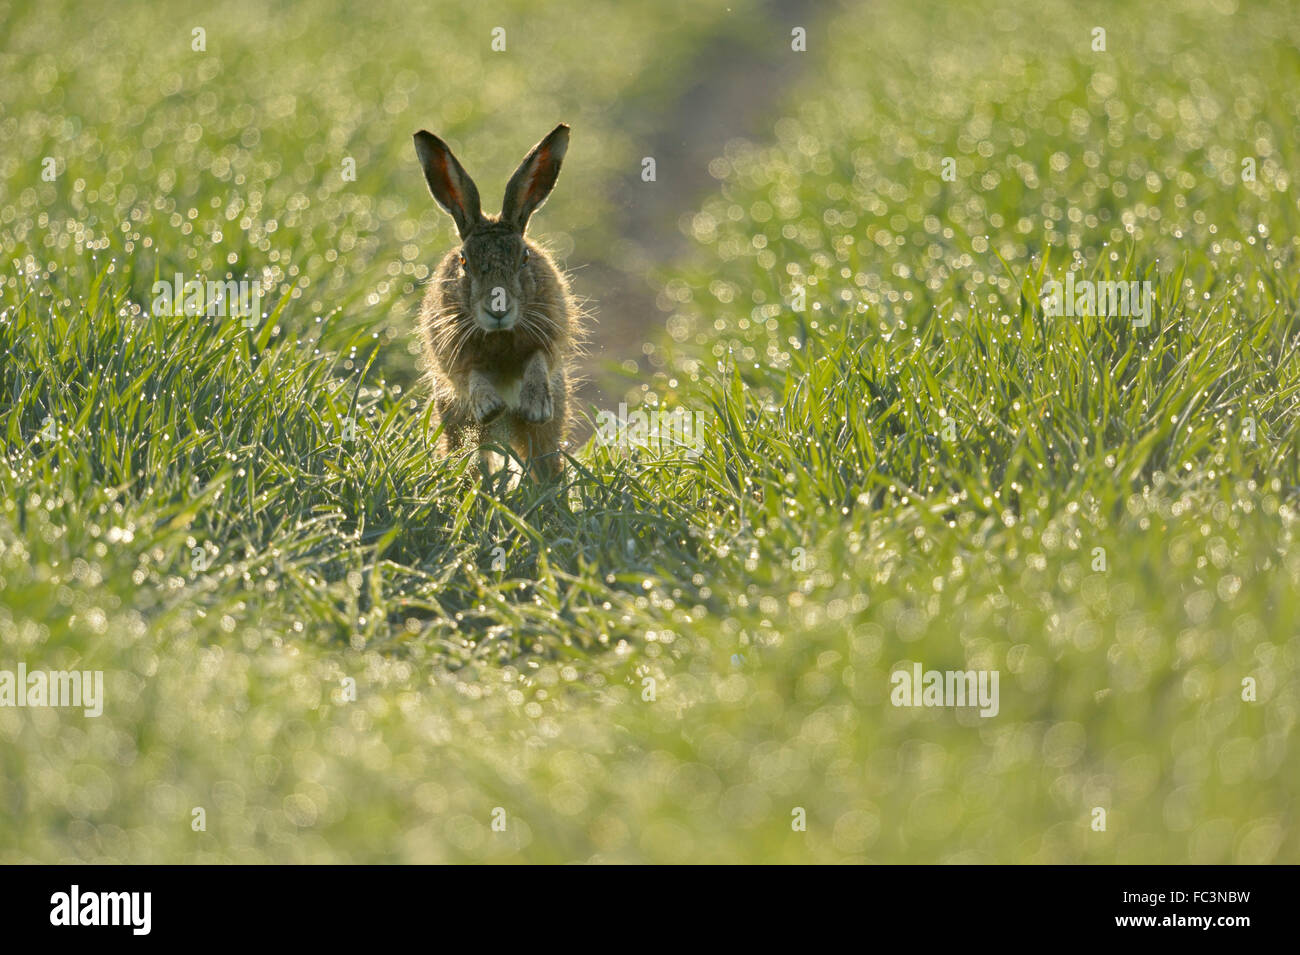 Brown Hare / European Hare / Feldhase ( Lepus europaeus ) jumps towards, sparkling pearls of dew, frontal view, - Stock Image